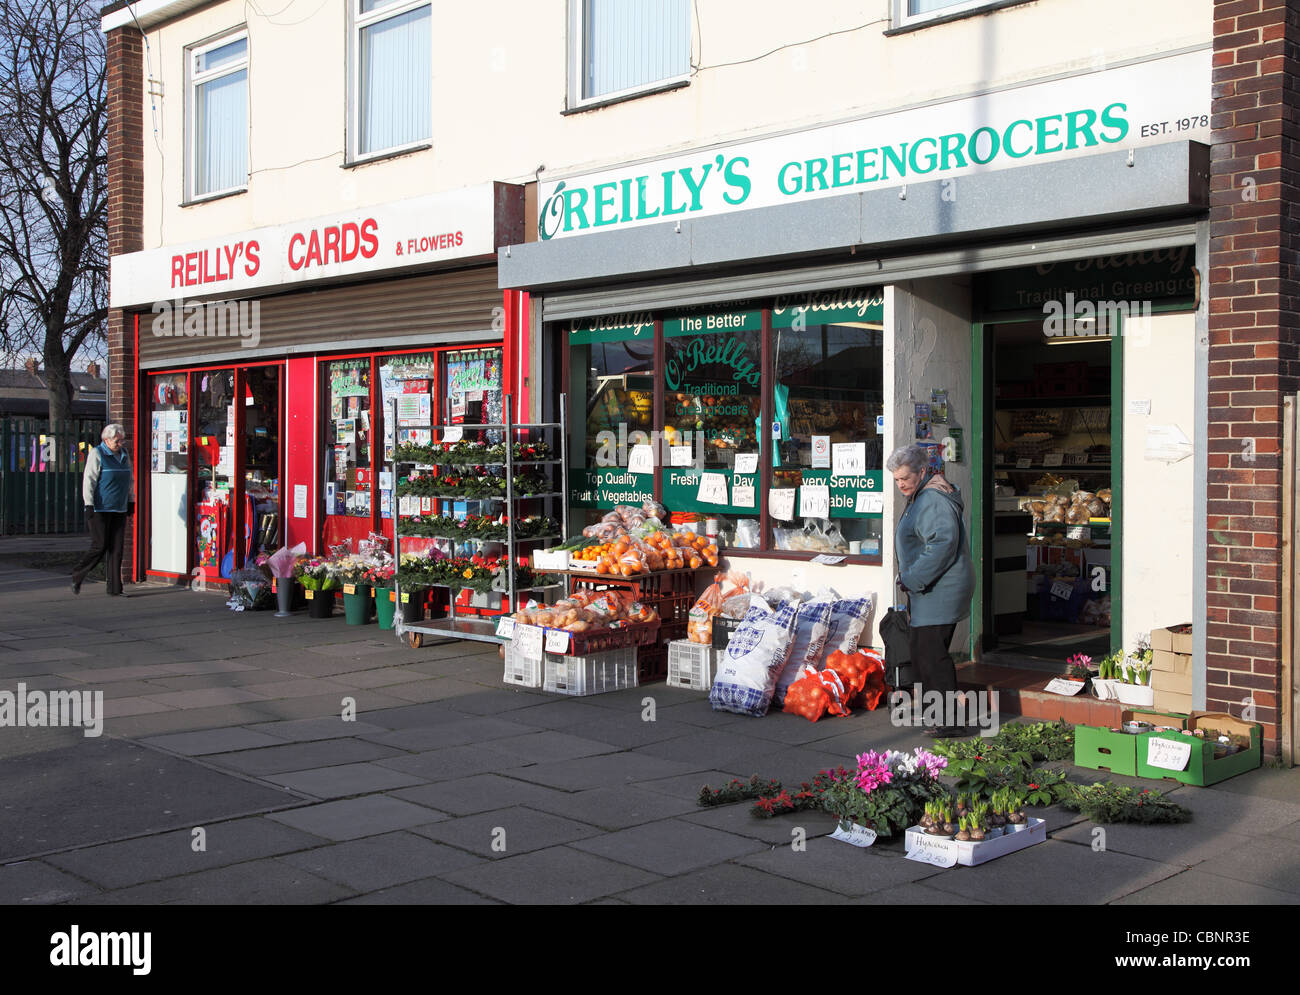 Reilly's greengrocers and card shops, Concord, Washington, north east England - Stock Image